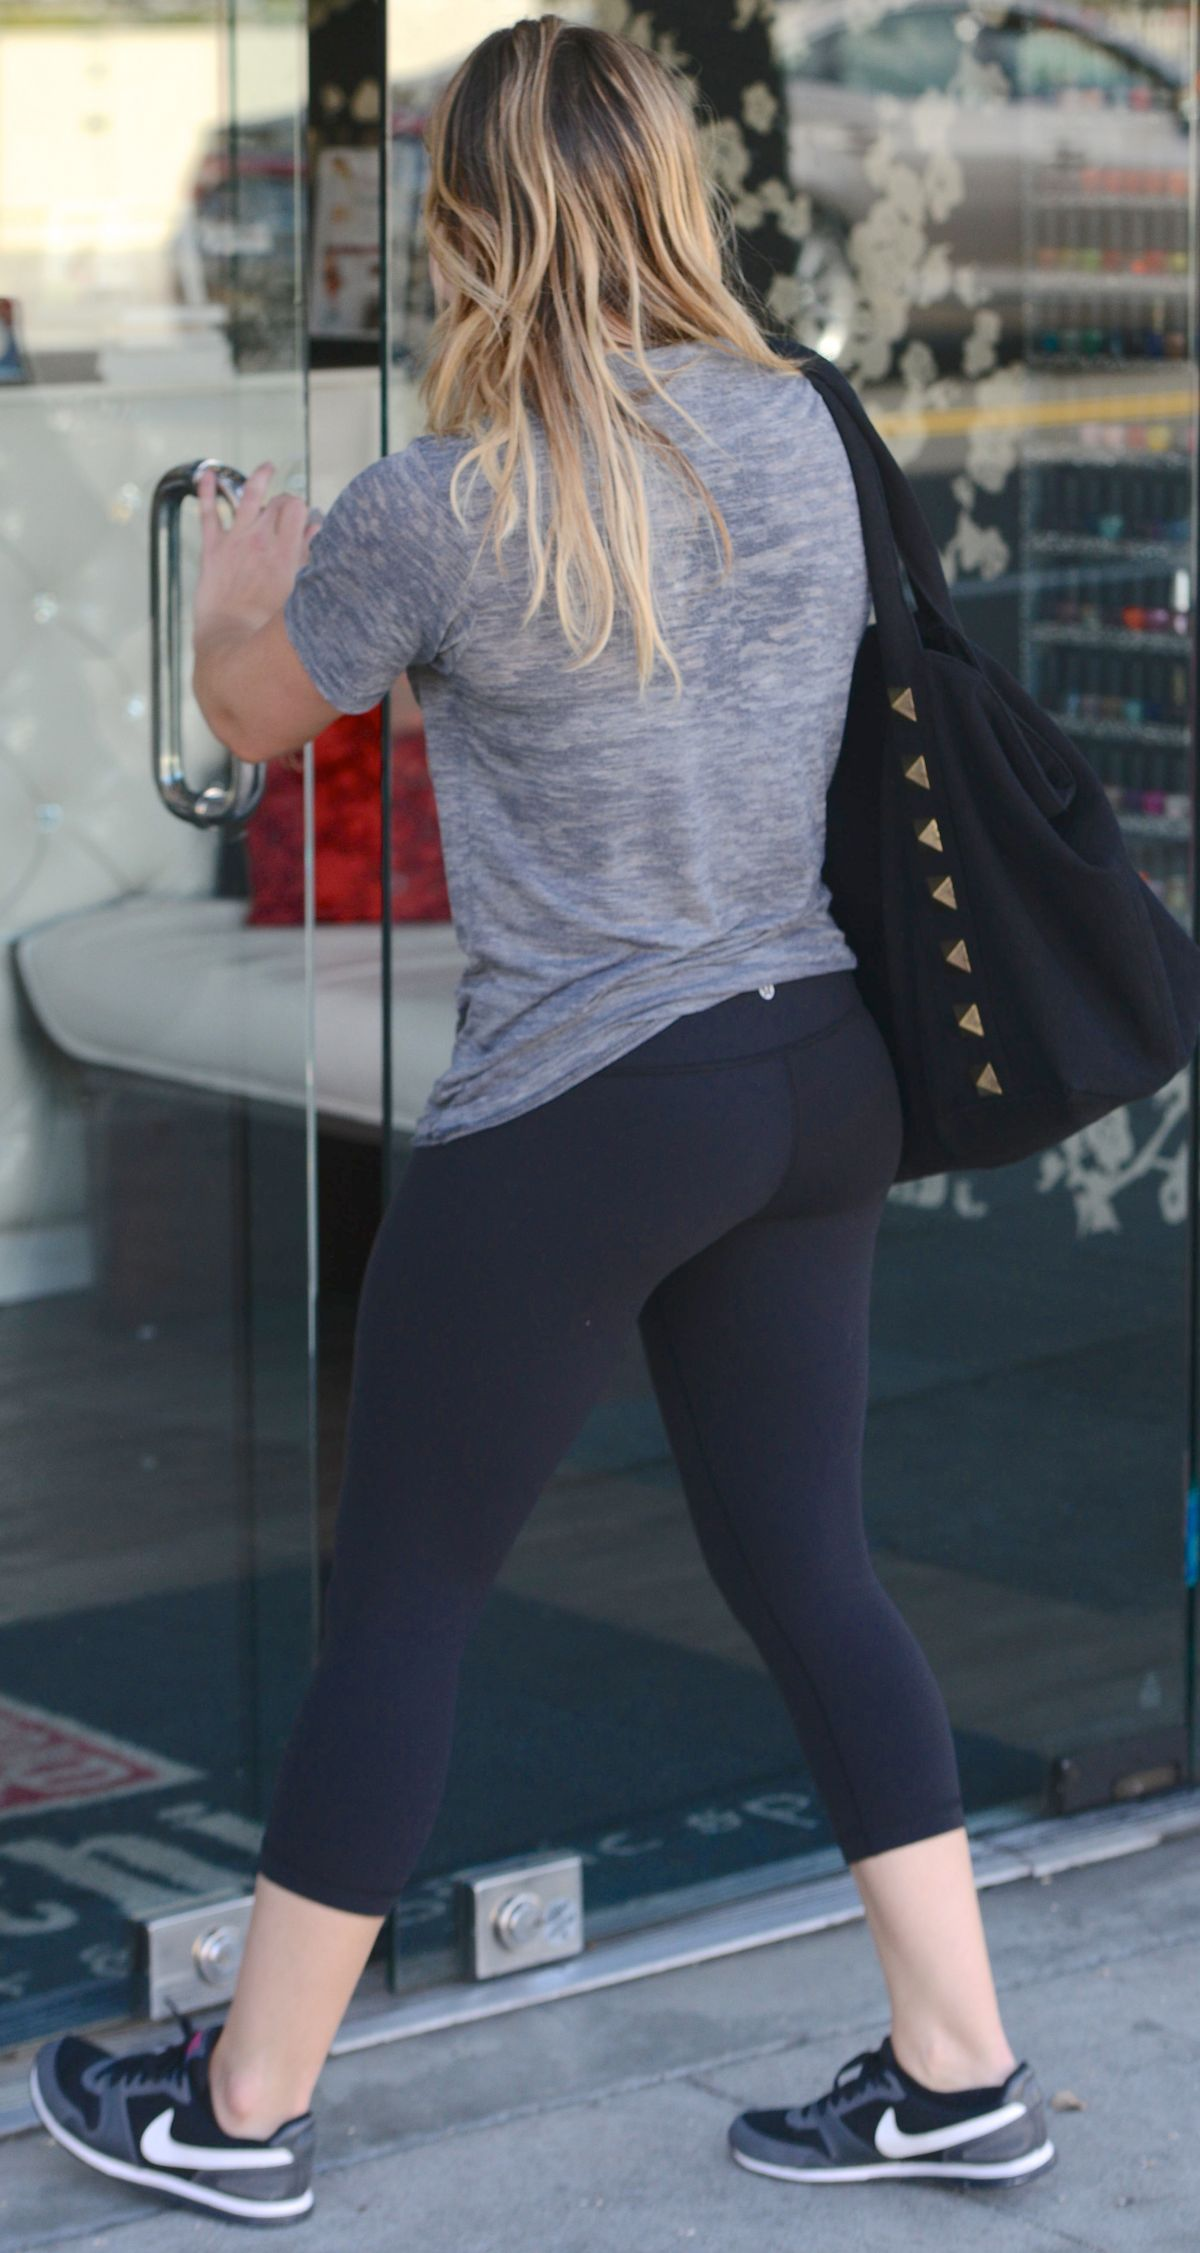 Hilary Duff In Leggings Out In Beverly Hills Hawtcelebs